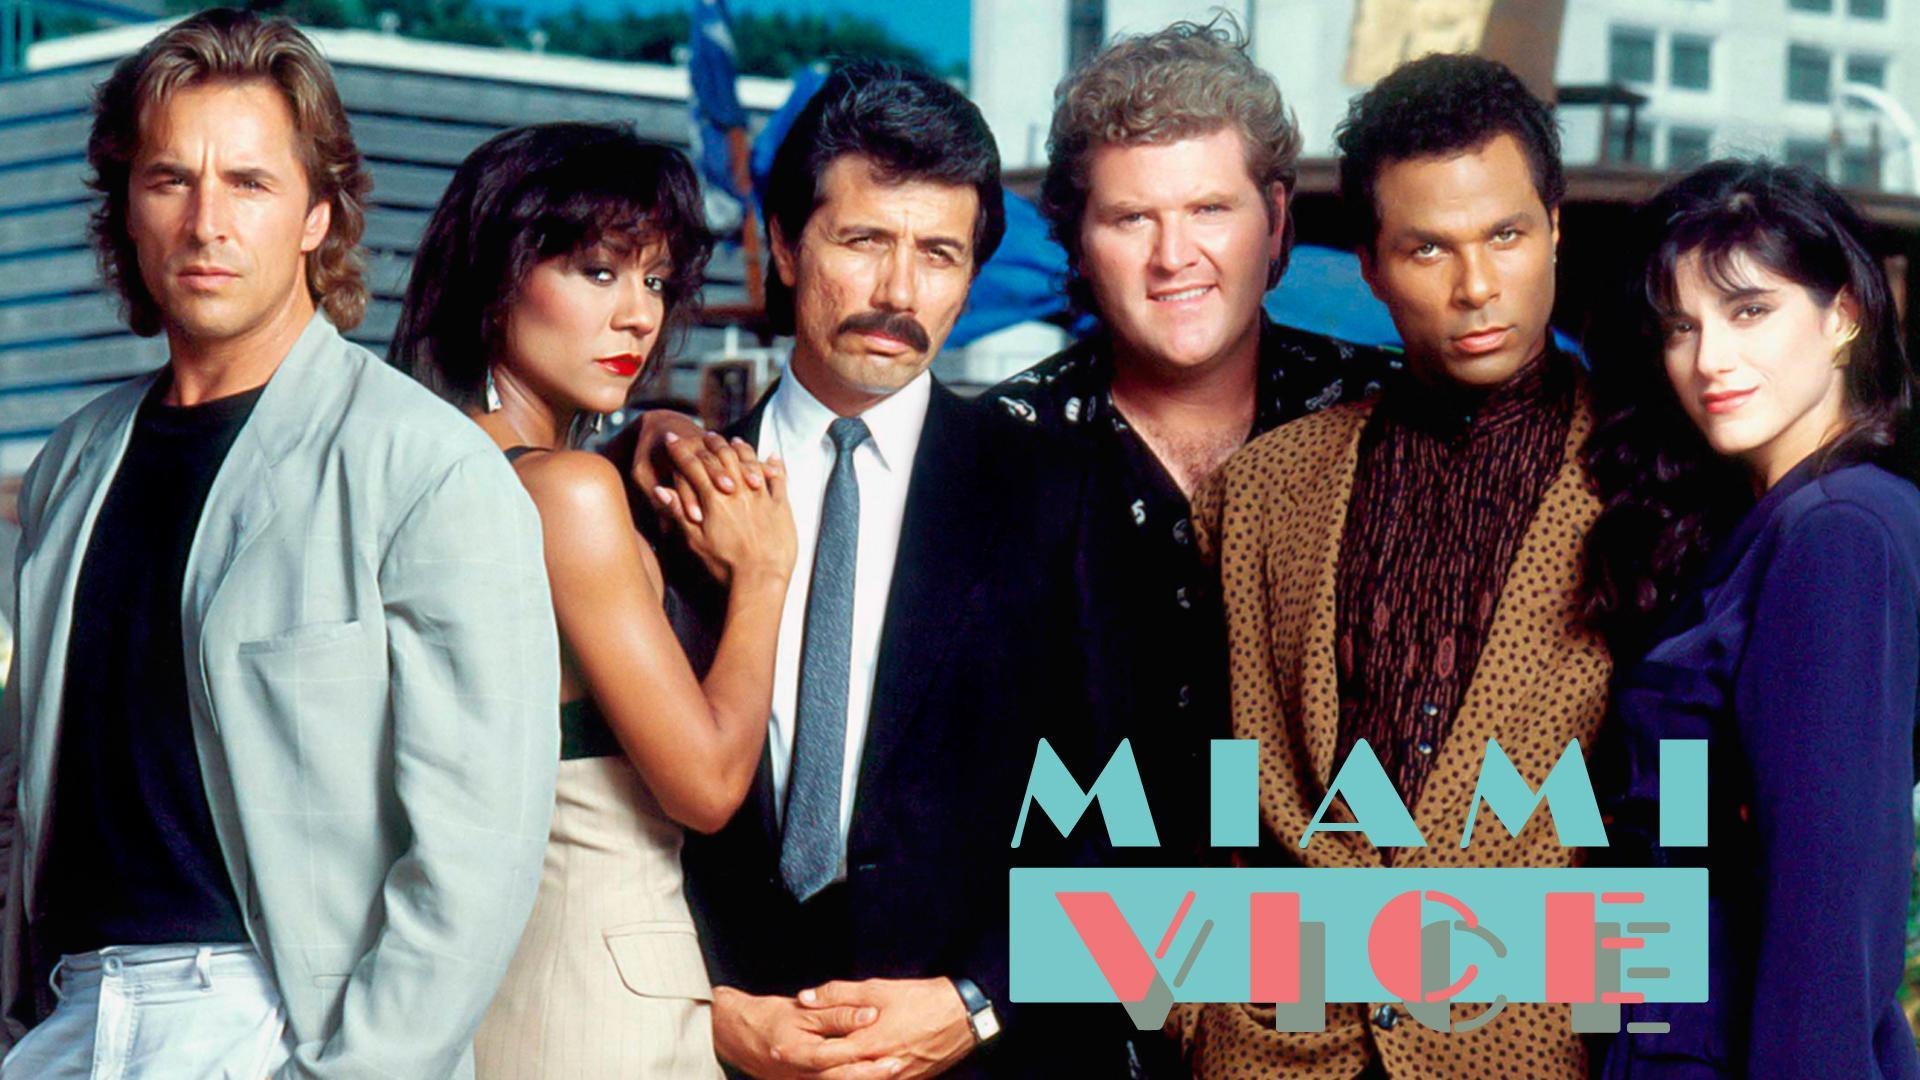 image gallery for miami vice tv series filmaffinity. Black Bedroom Furniture Sets. Home Design Ideas